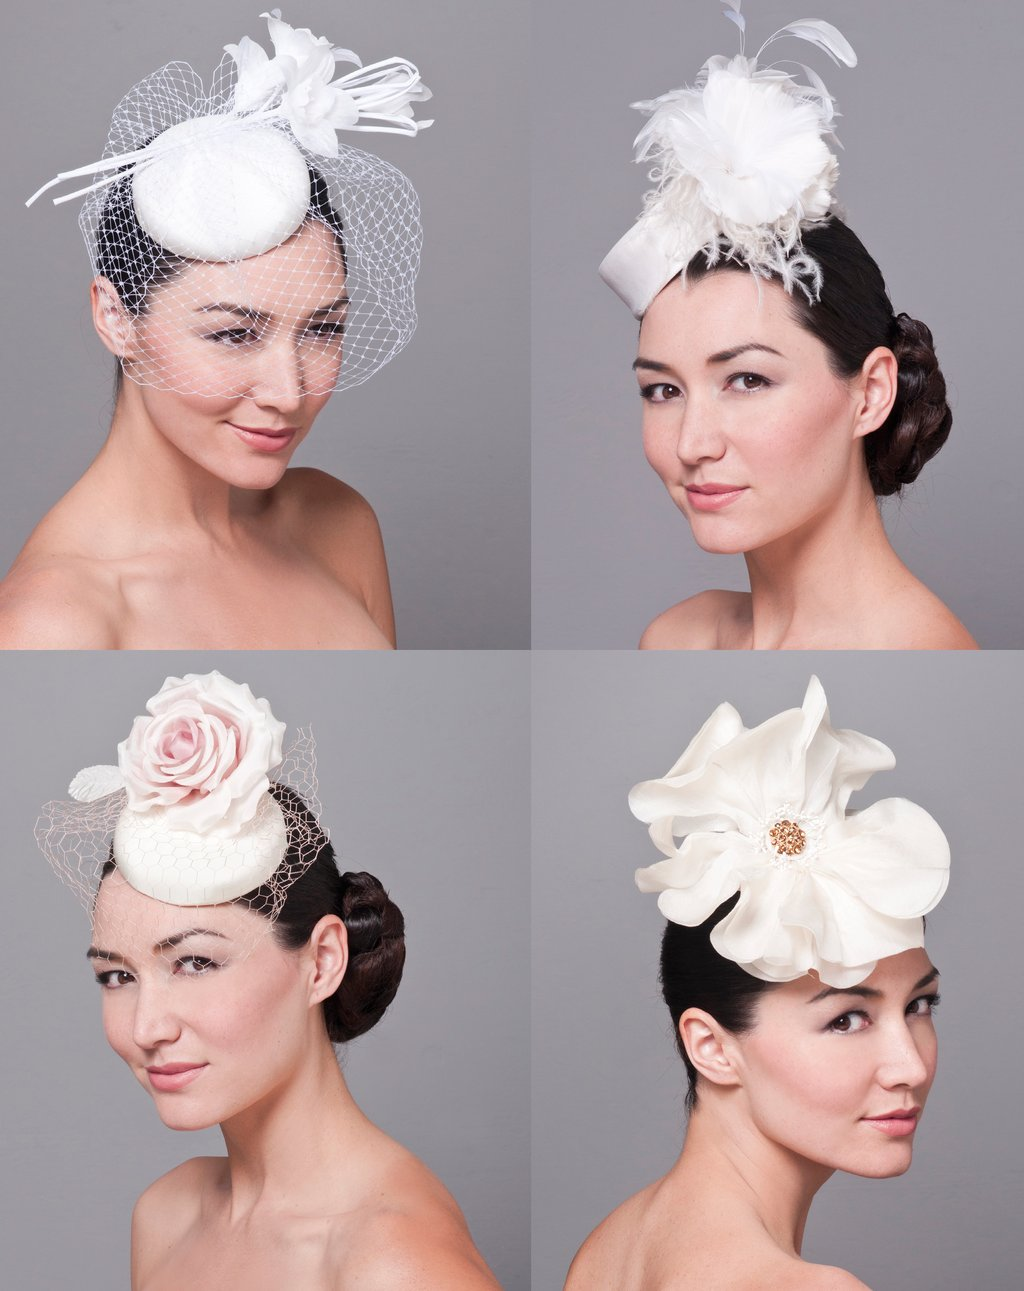 Bridal-hats-wedding-hair-acccesories-2012-trends.full